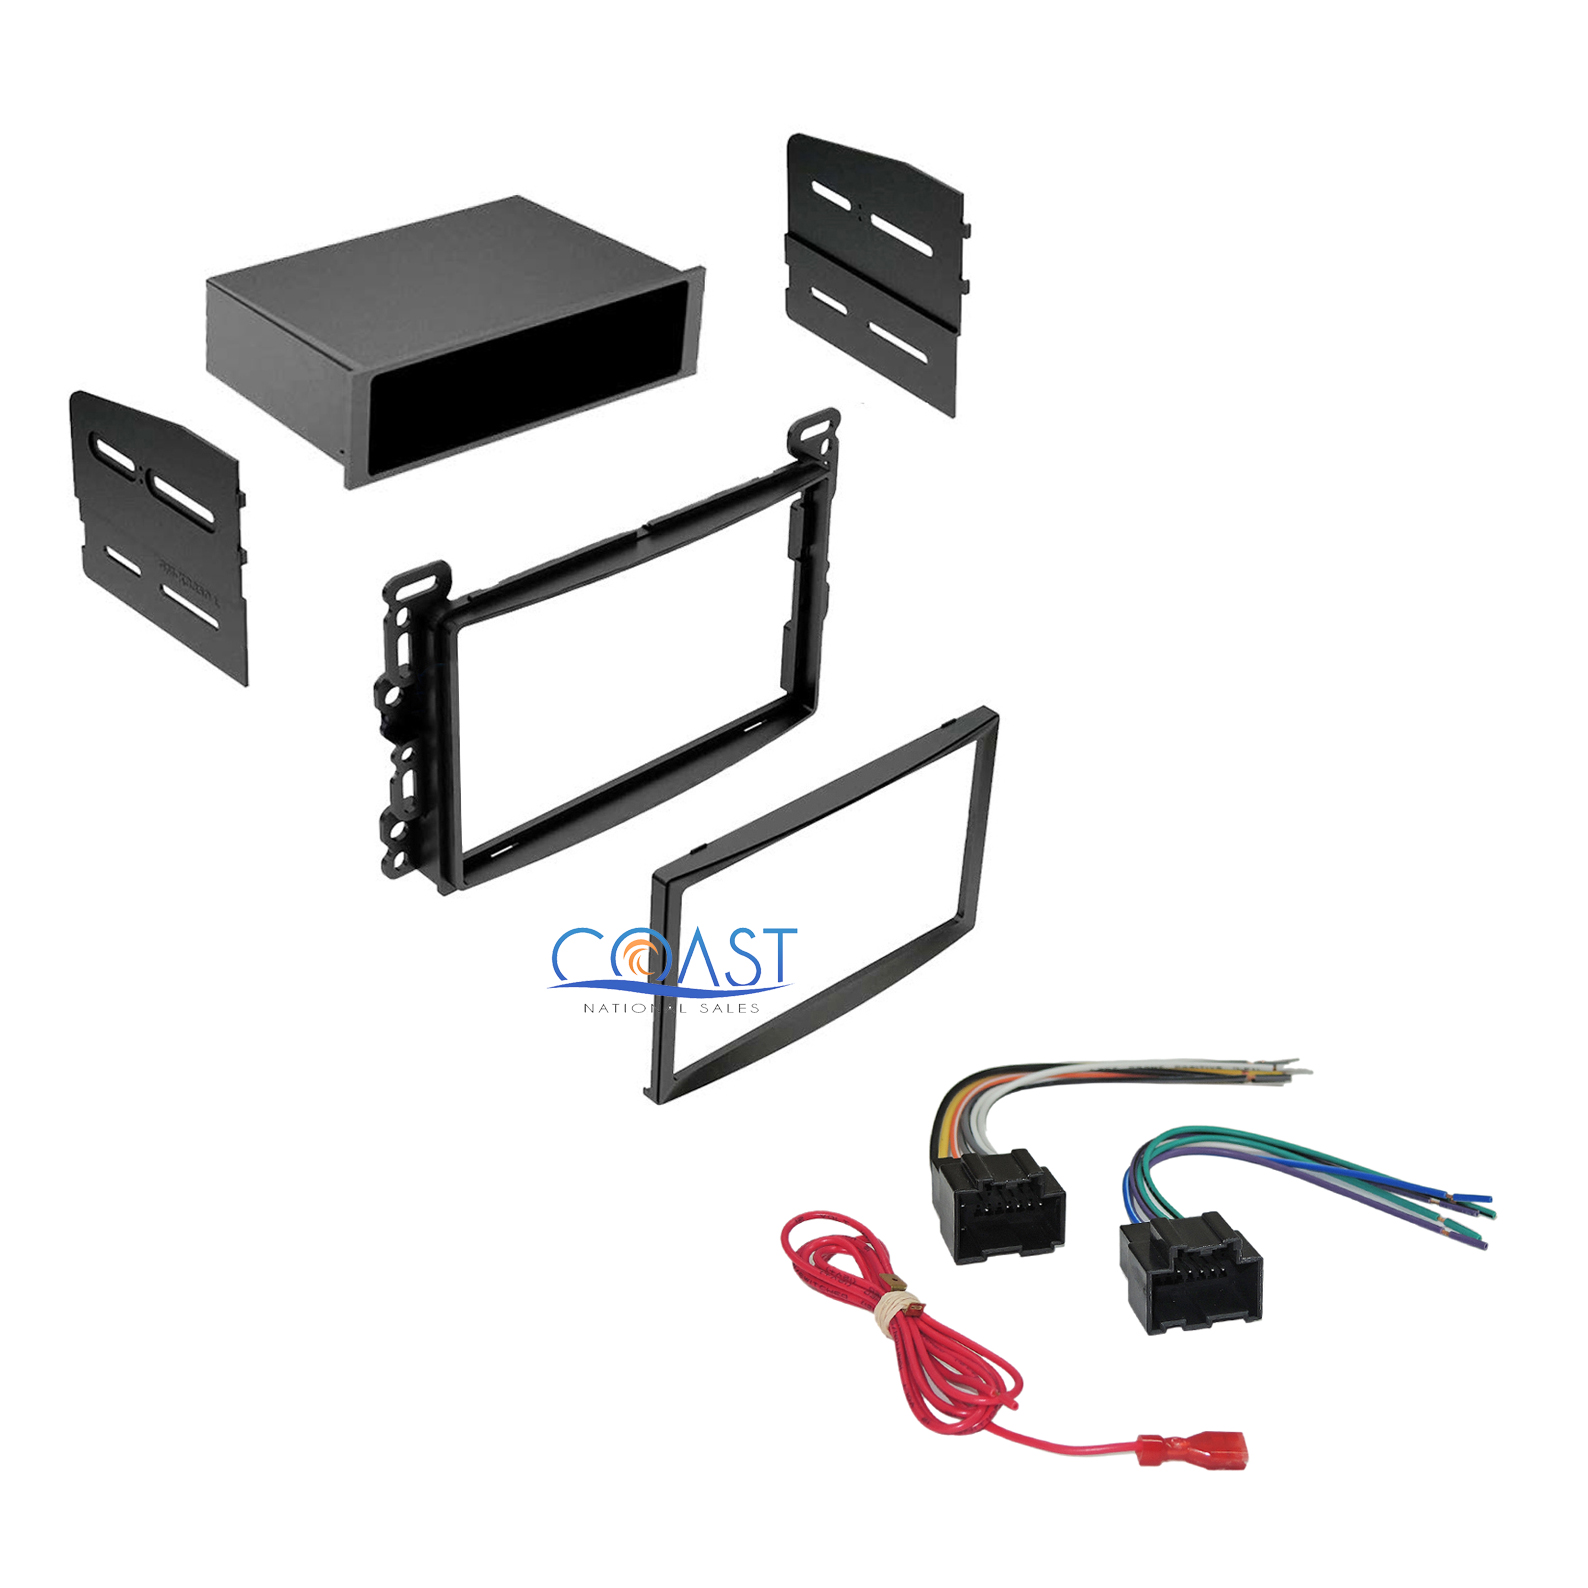 2004 chevy stereo wiring harness car radio stereo dash kit w/ wiring harness for 2004-2010 ...